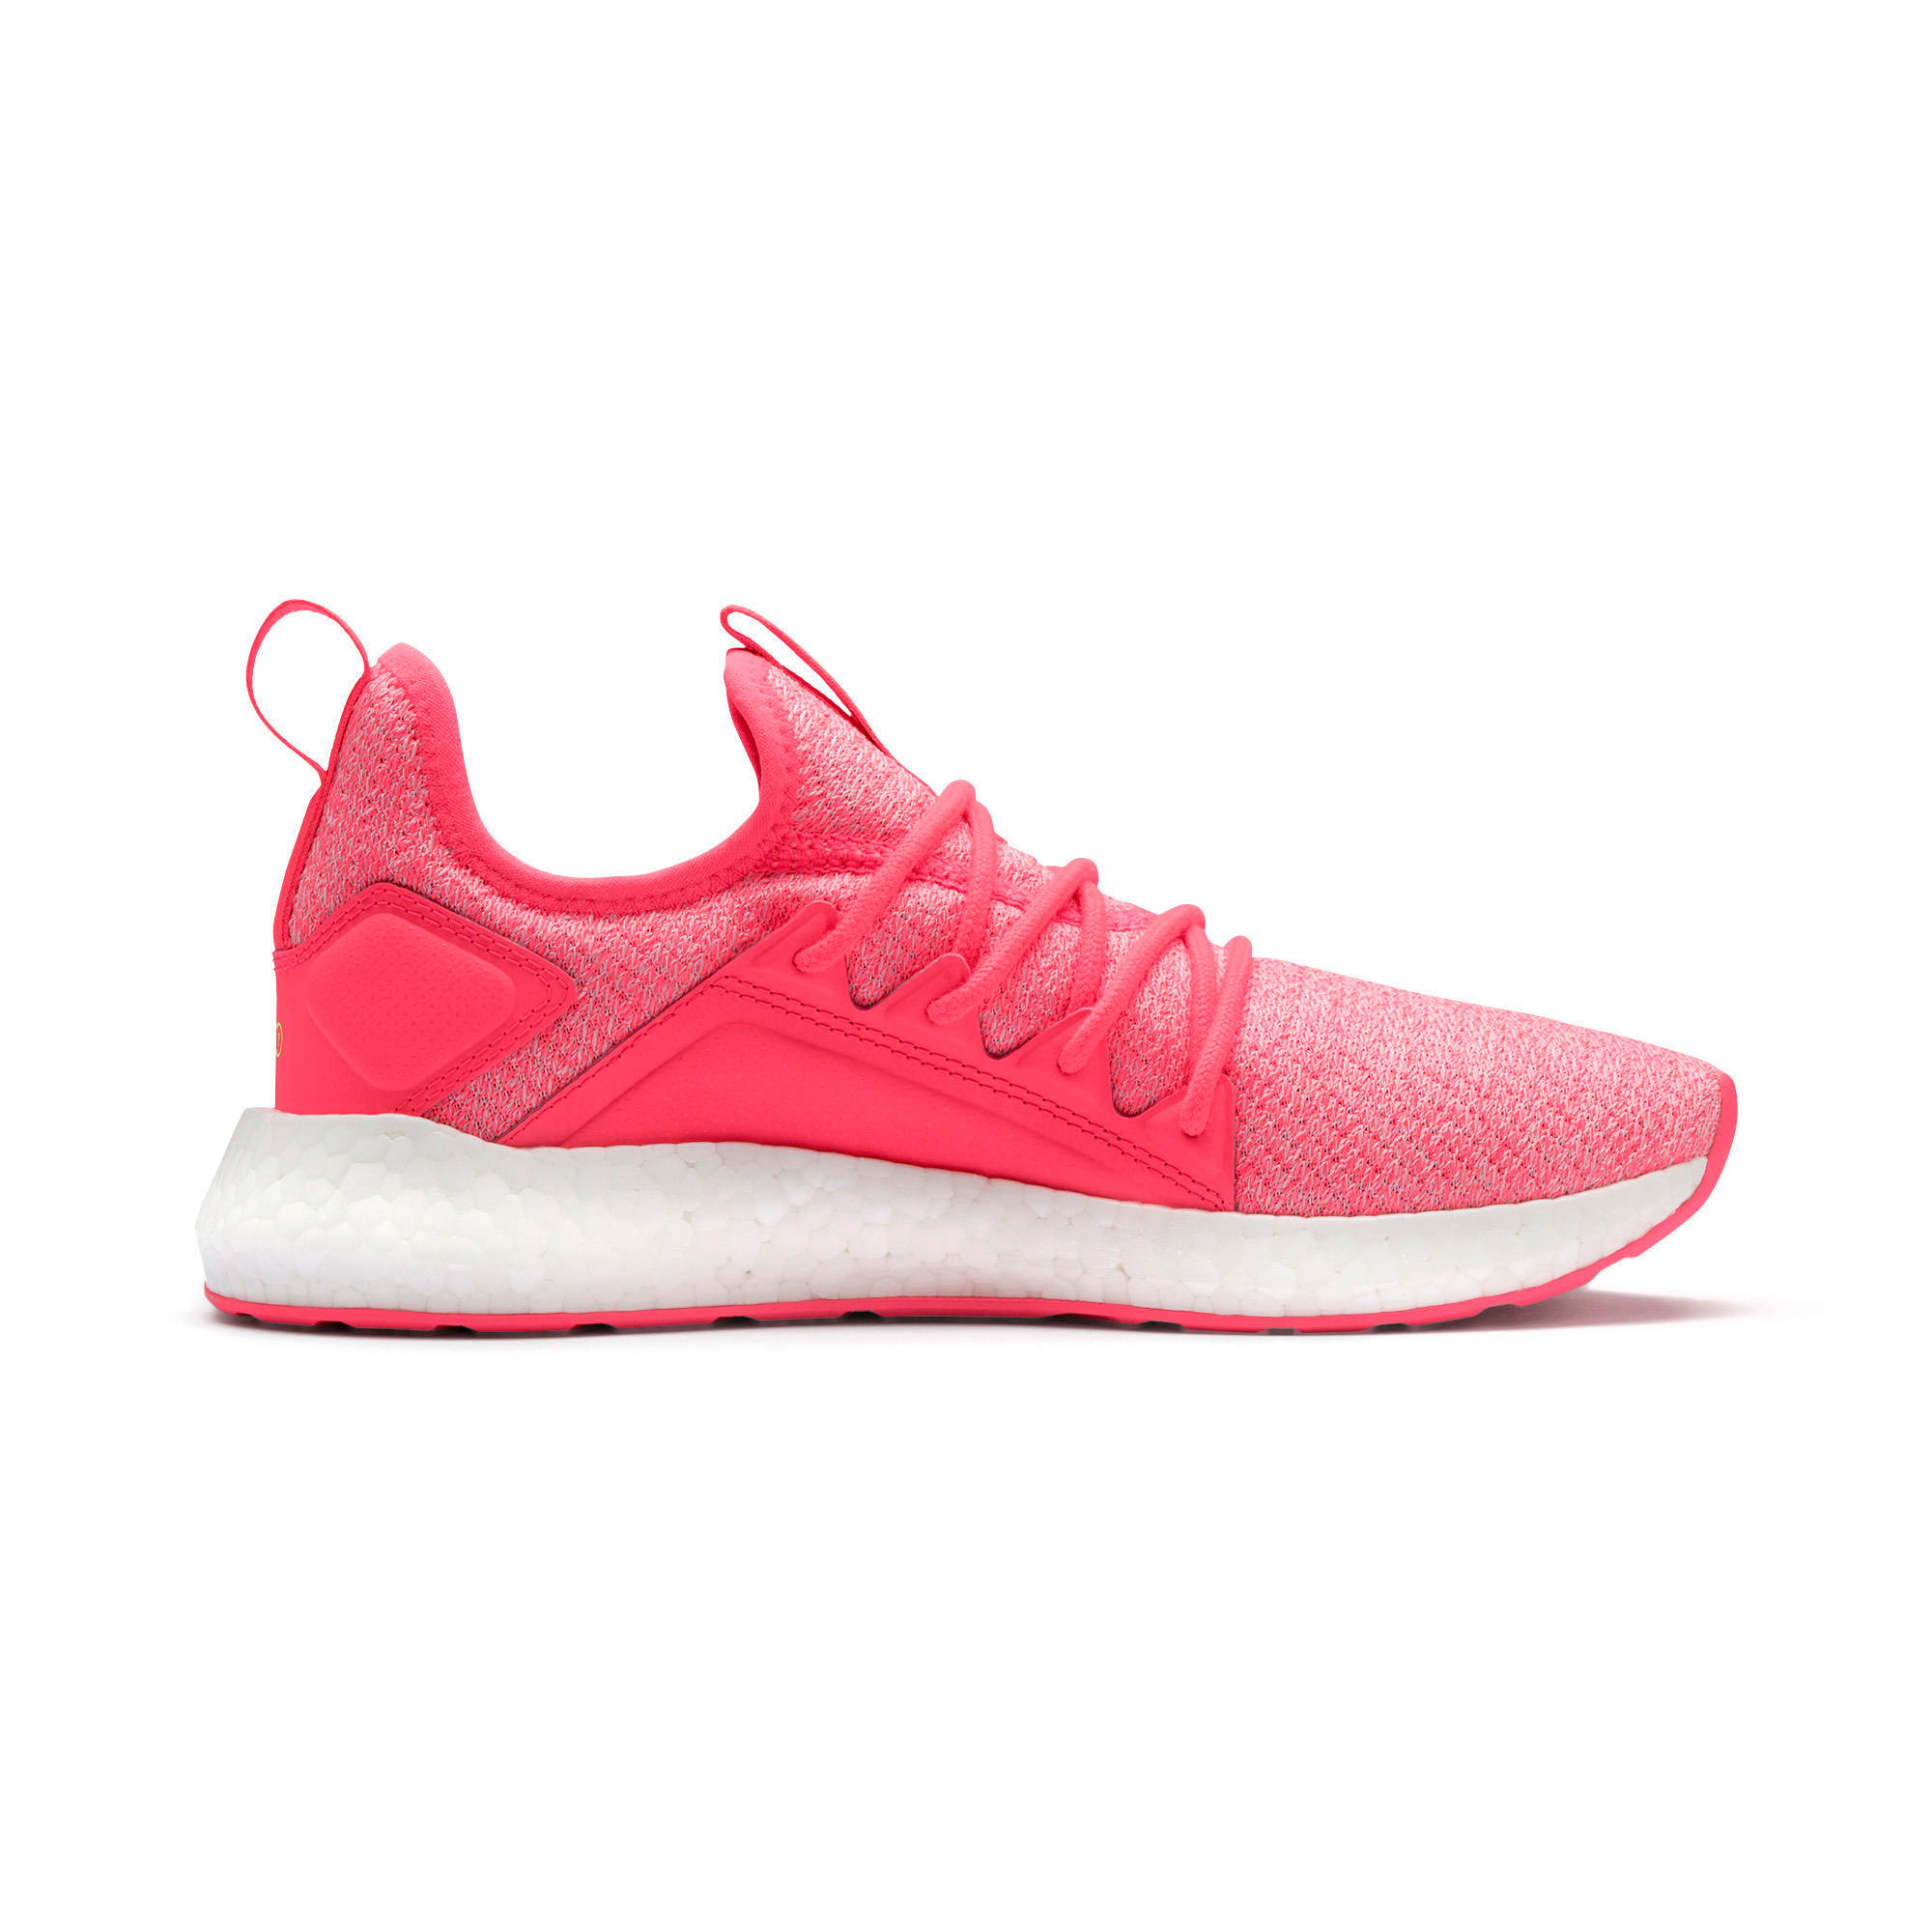 Thumbnail 7 of NRGY Neko Knit Women's Running Shoes, Pink Alert-Puma White, medium-IND